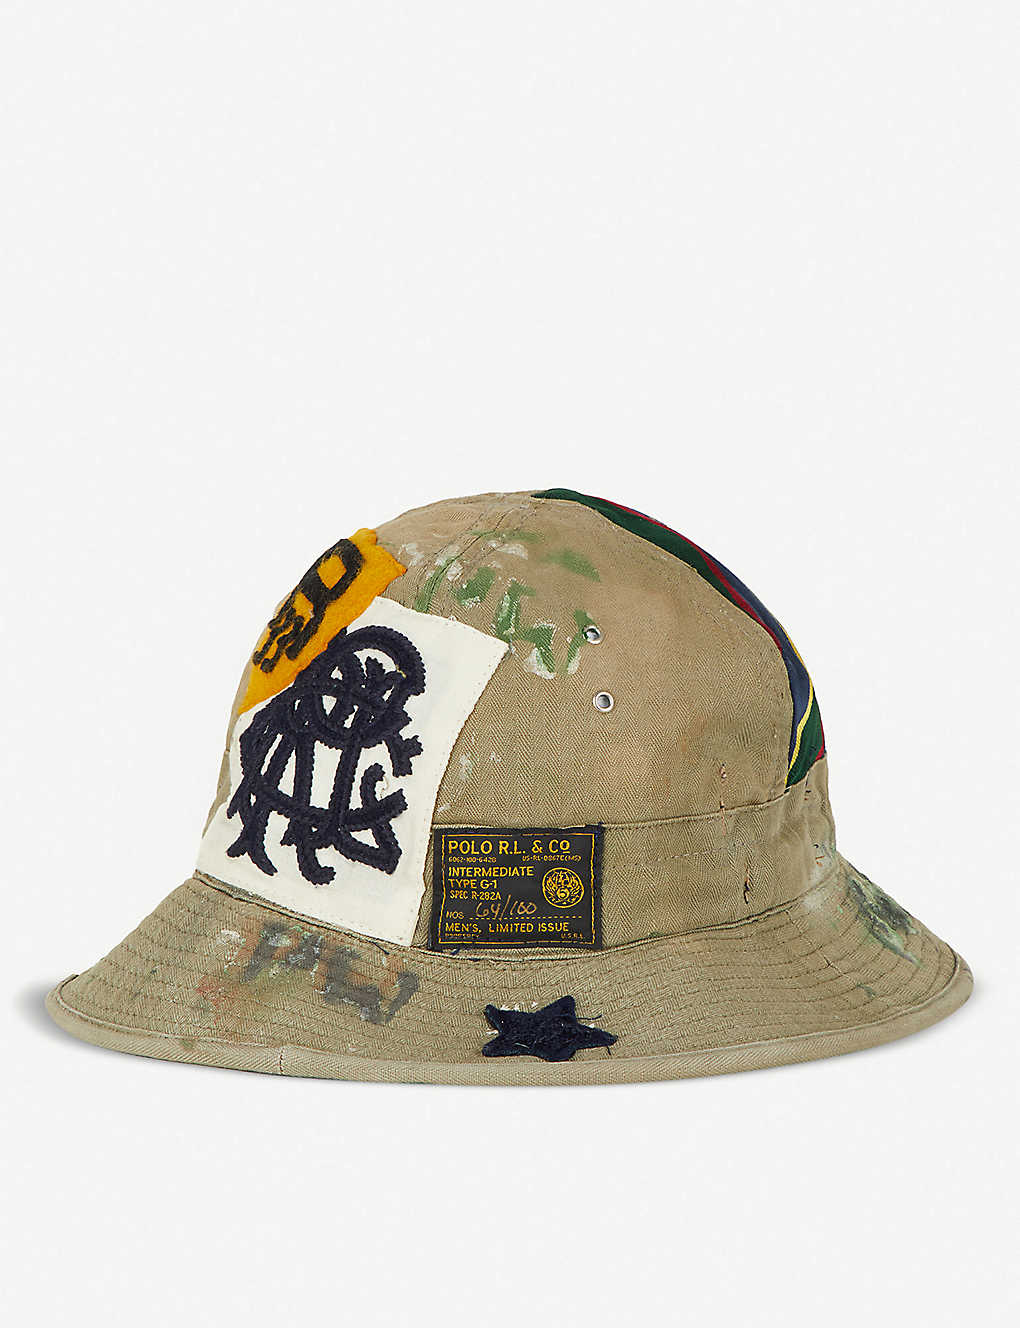 POLO RALPH LAUREN - Embroidered patch canvas bucket hat  975b09b245b